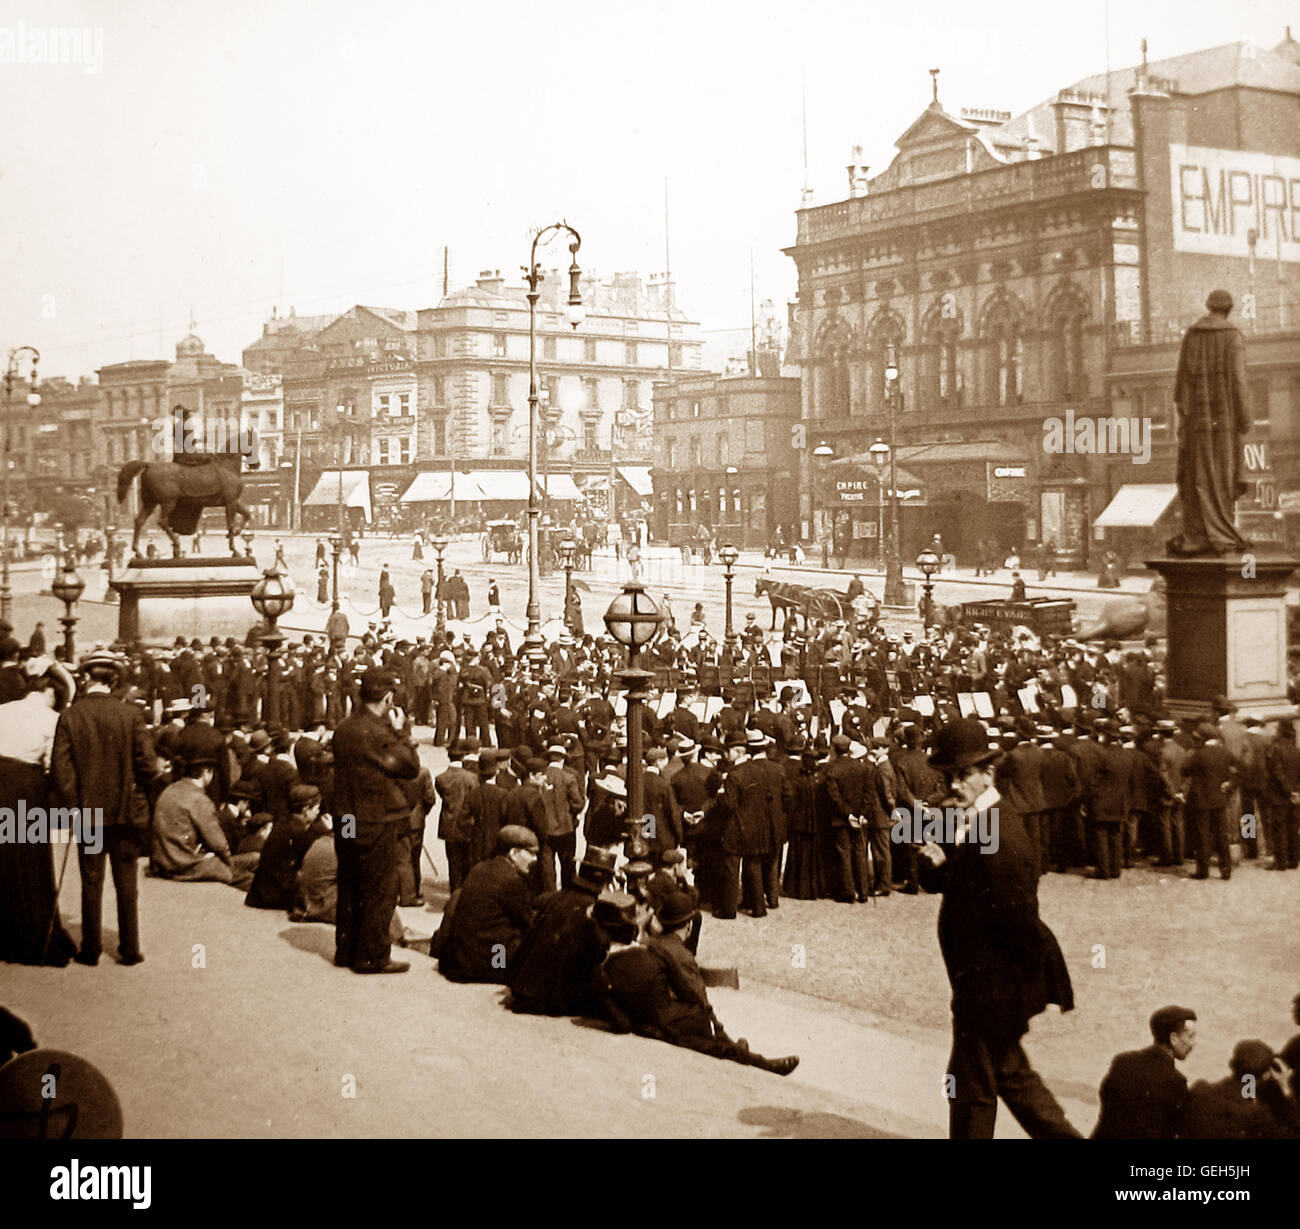 St. George's Place, Liverpool - early 1900s - Stock Image